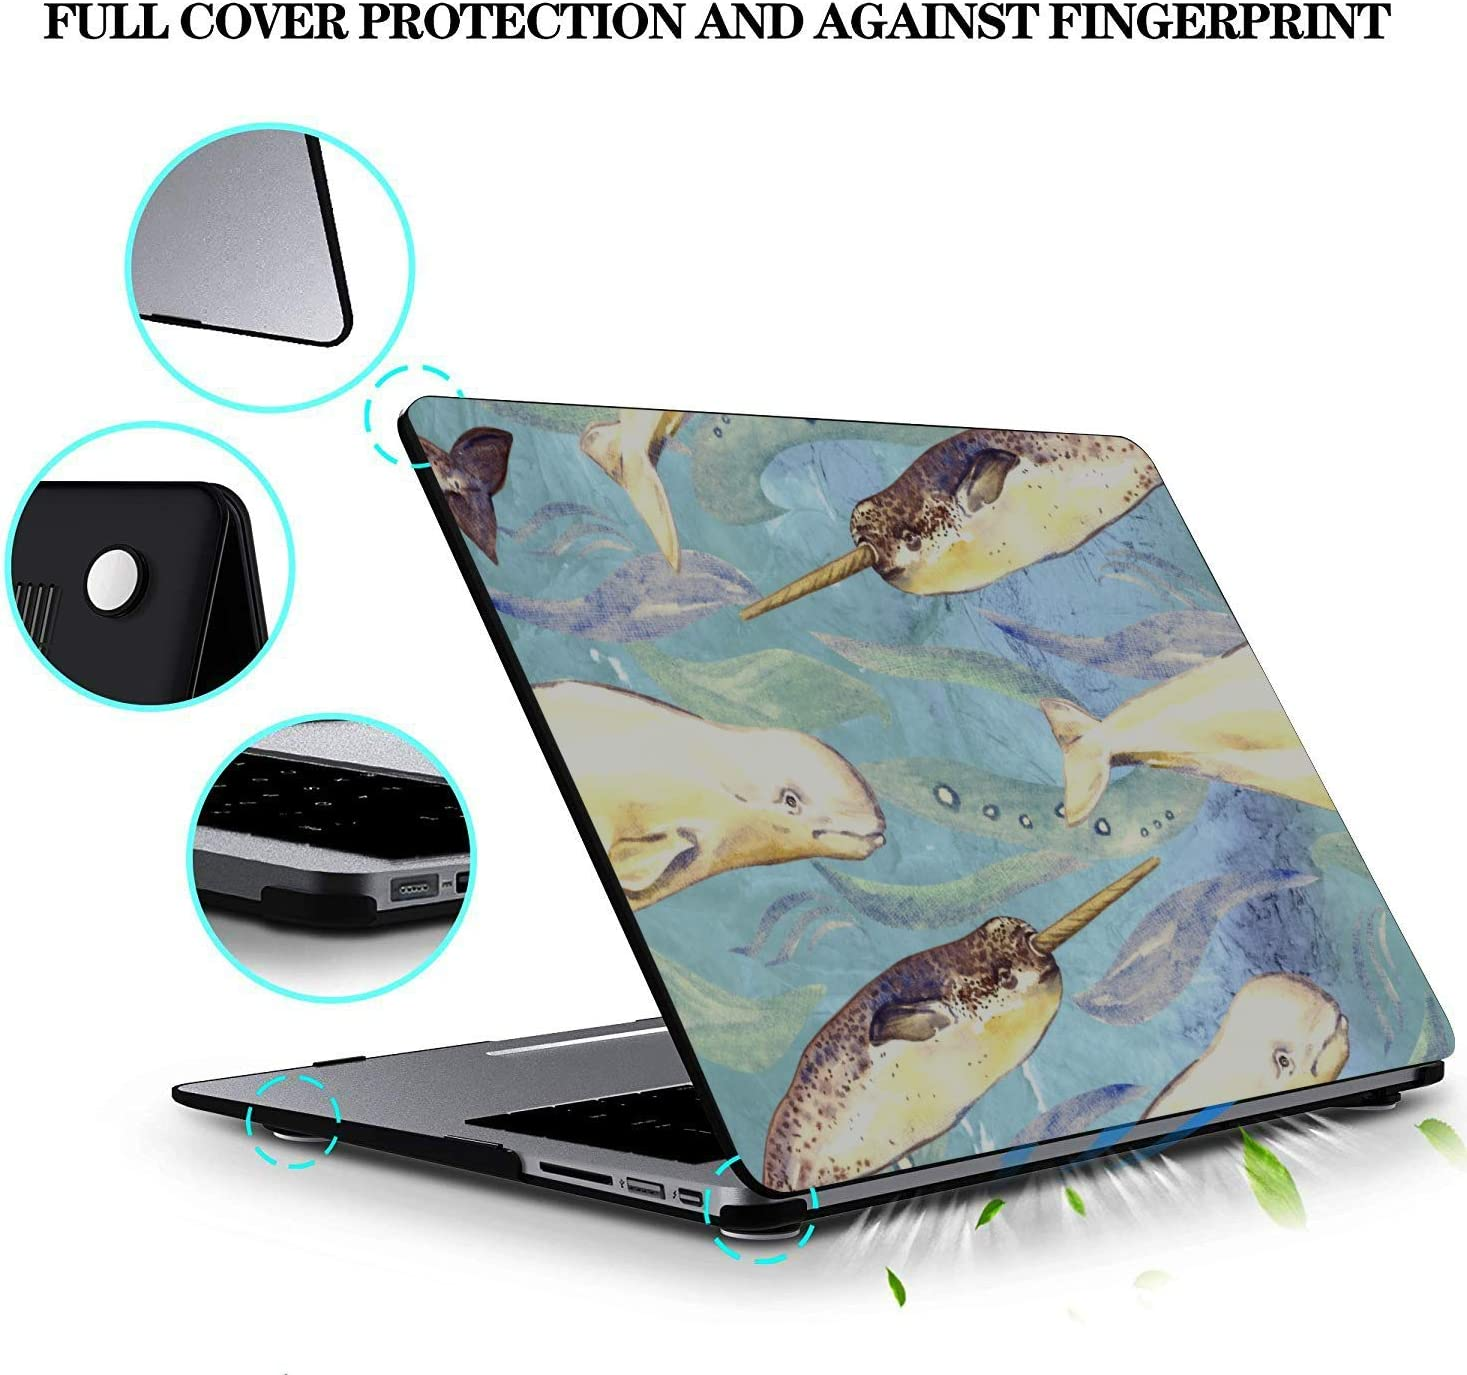 MacBook Pro A1708 Case Sea Creatures Ornamental Fish Squid Plastic Hard Shell Compatible Mac Air 11 Pro 13 15 MacBook Pro 2017 Accessories Protection for MacBook 2016-2019 Version